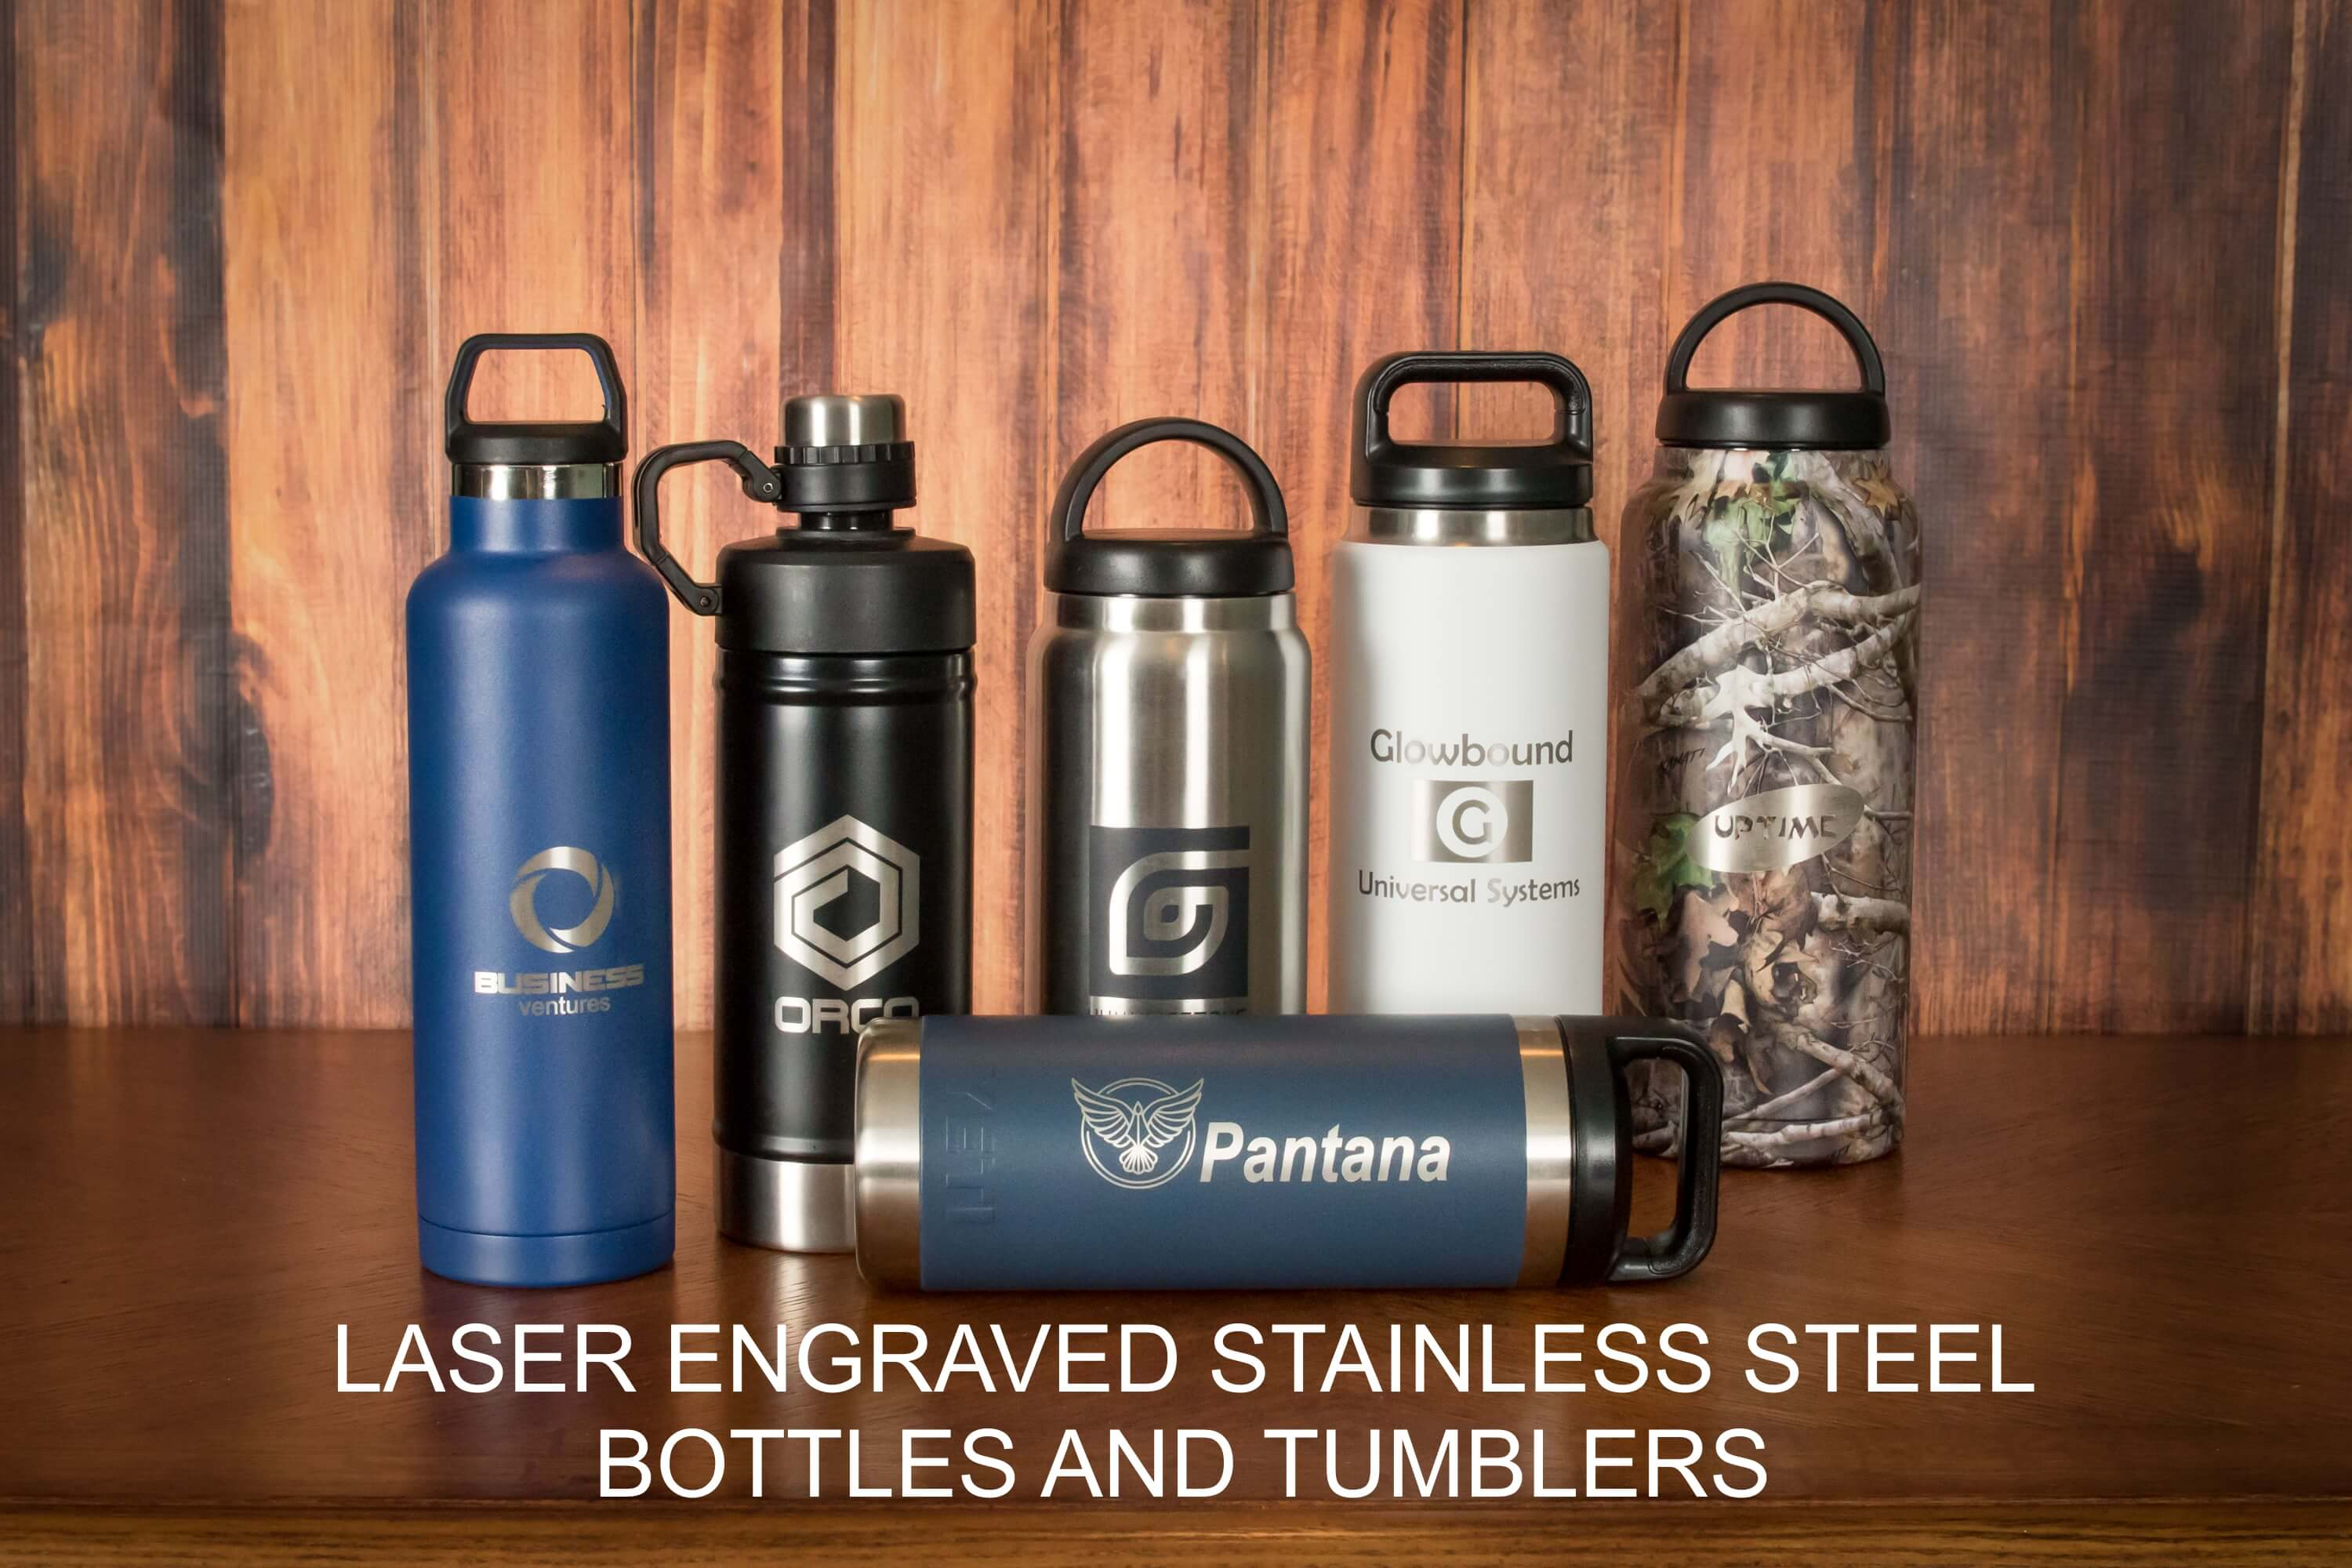 Laser Engraved Bottles and Tumblers